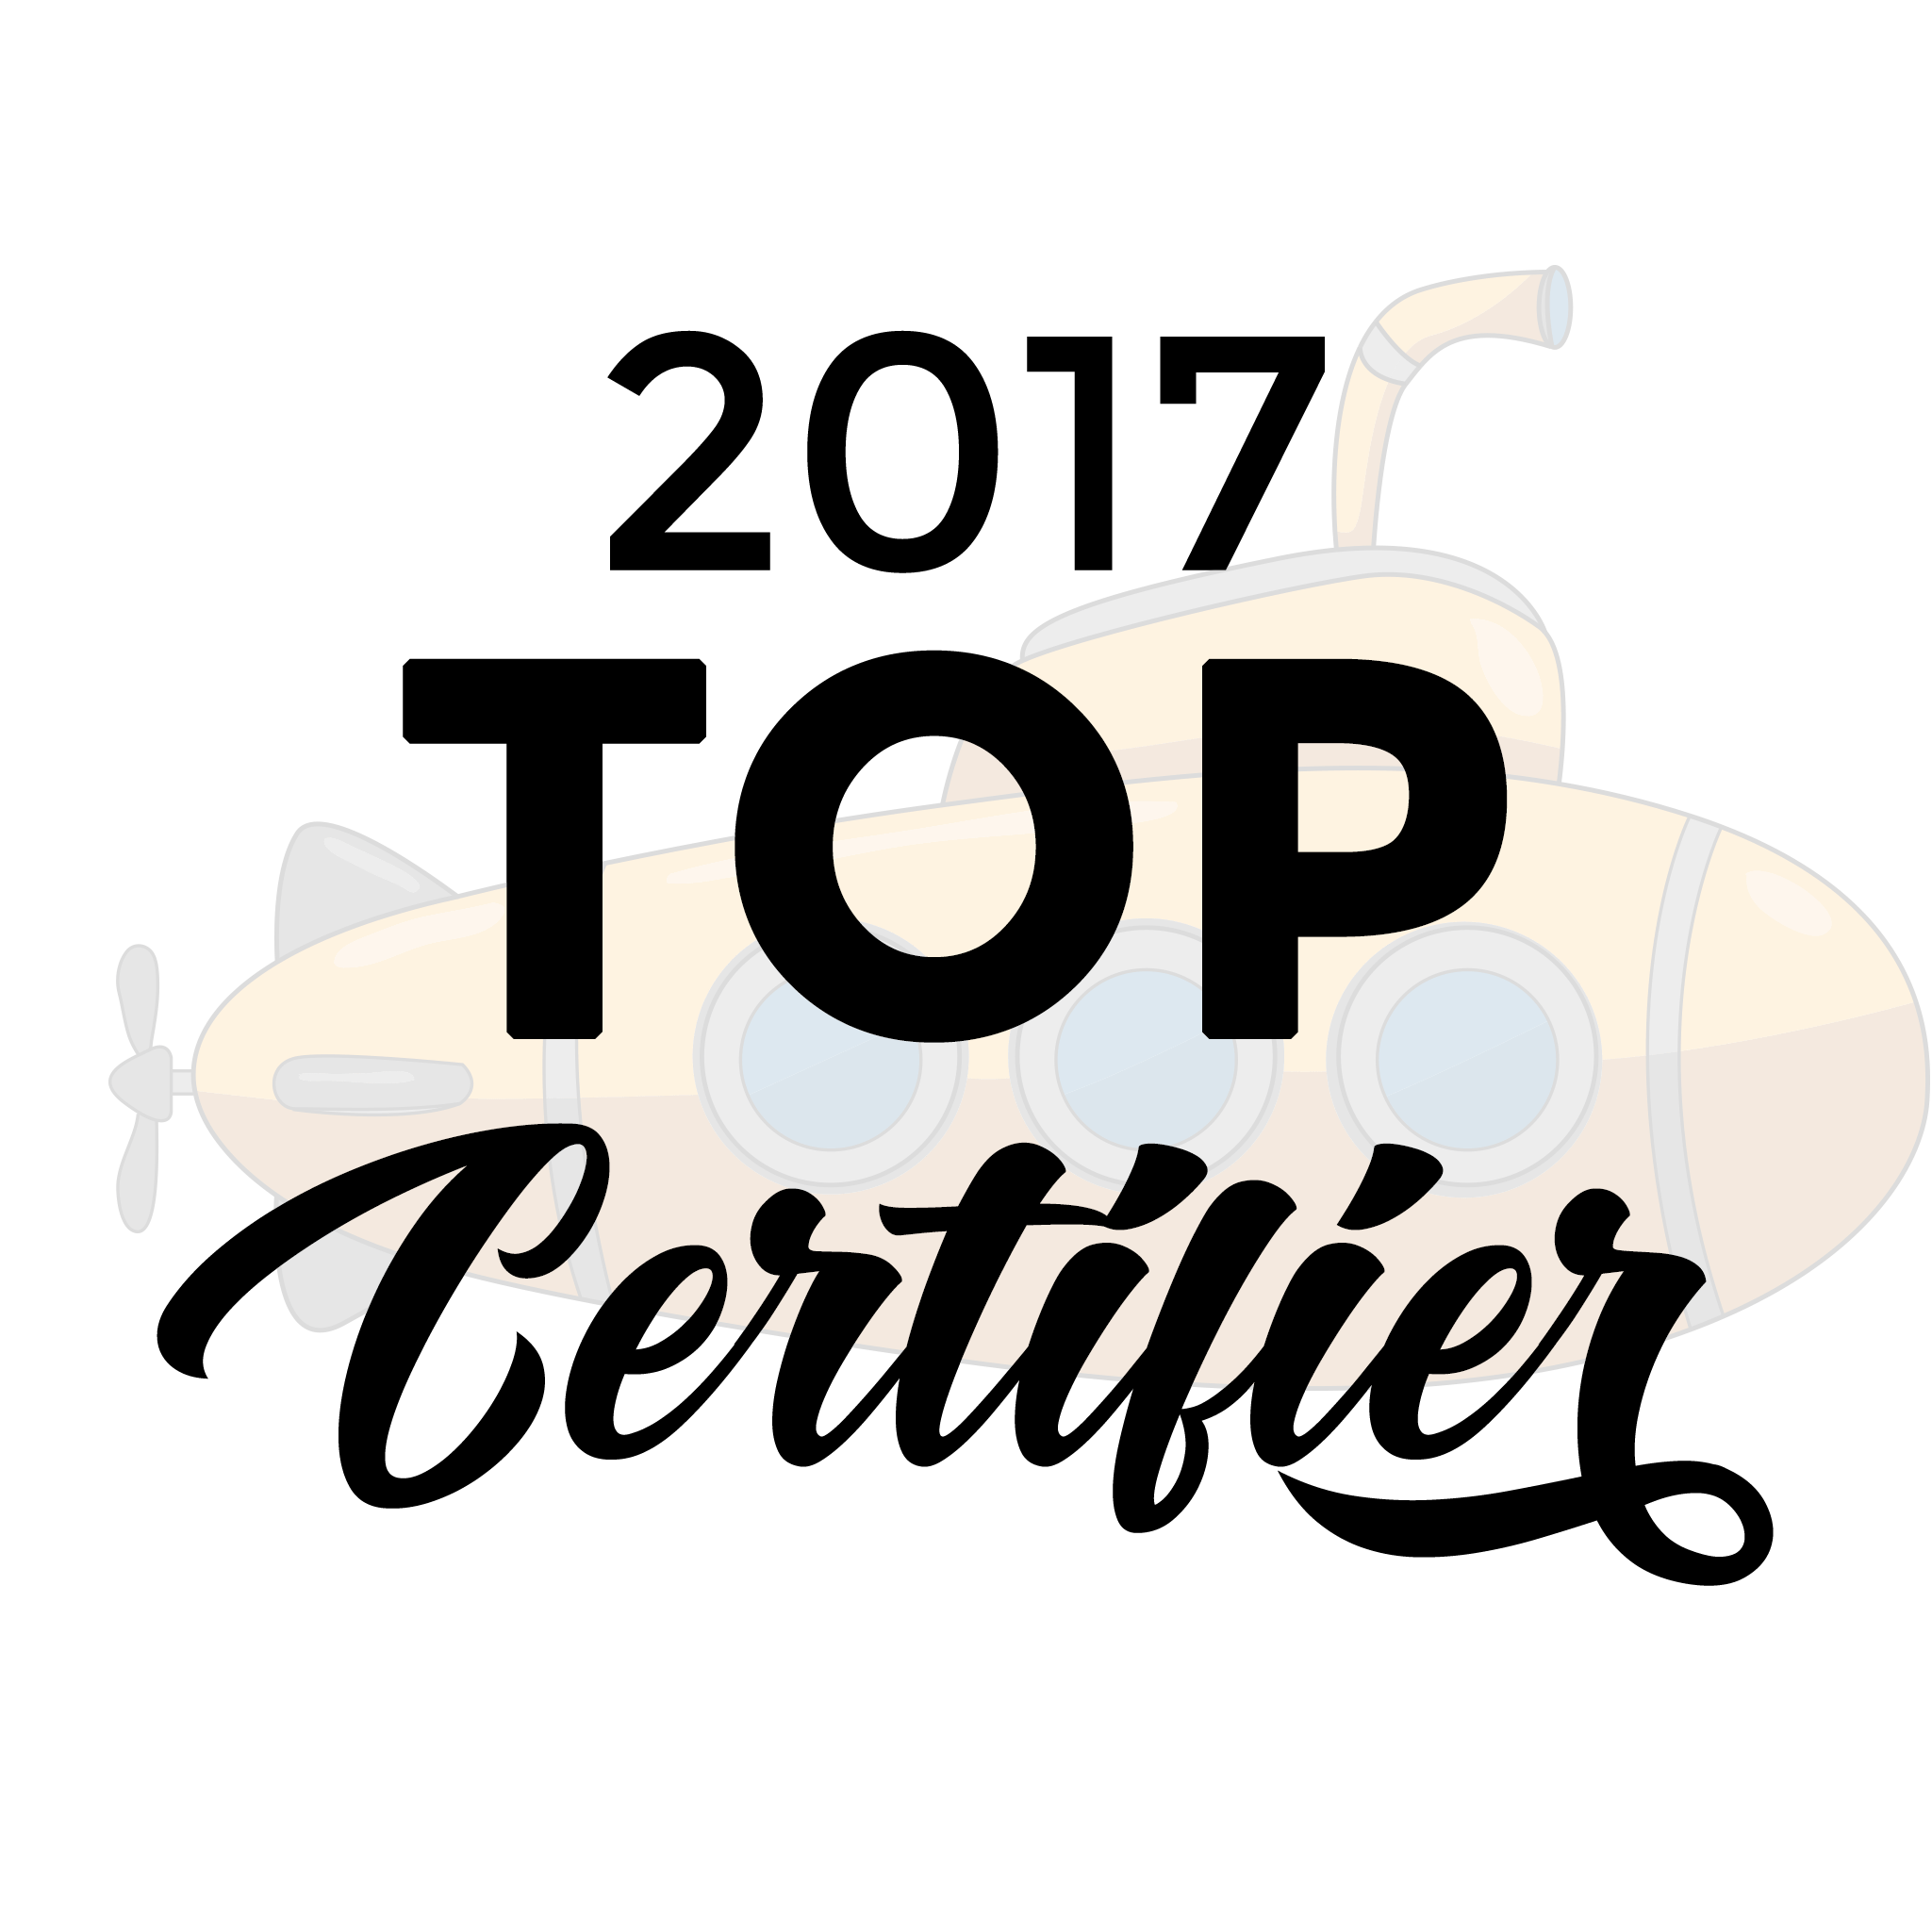 award-top-certifier